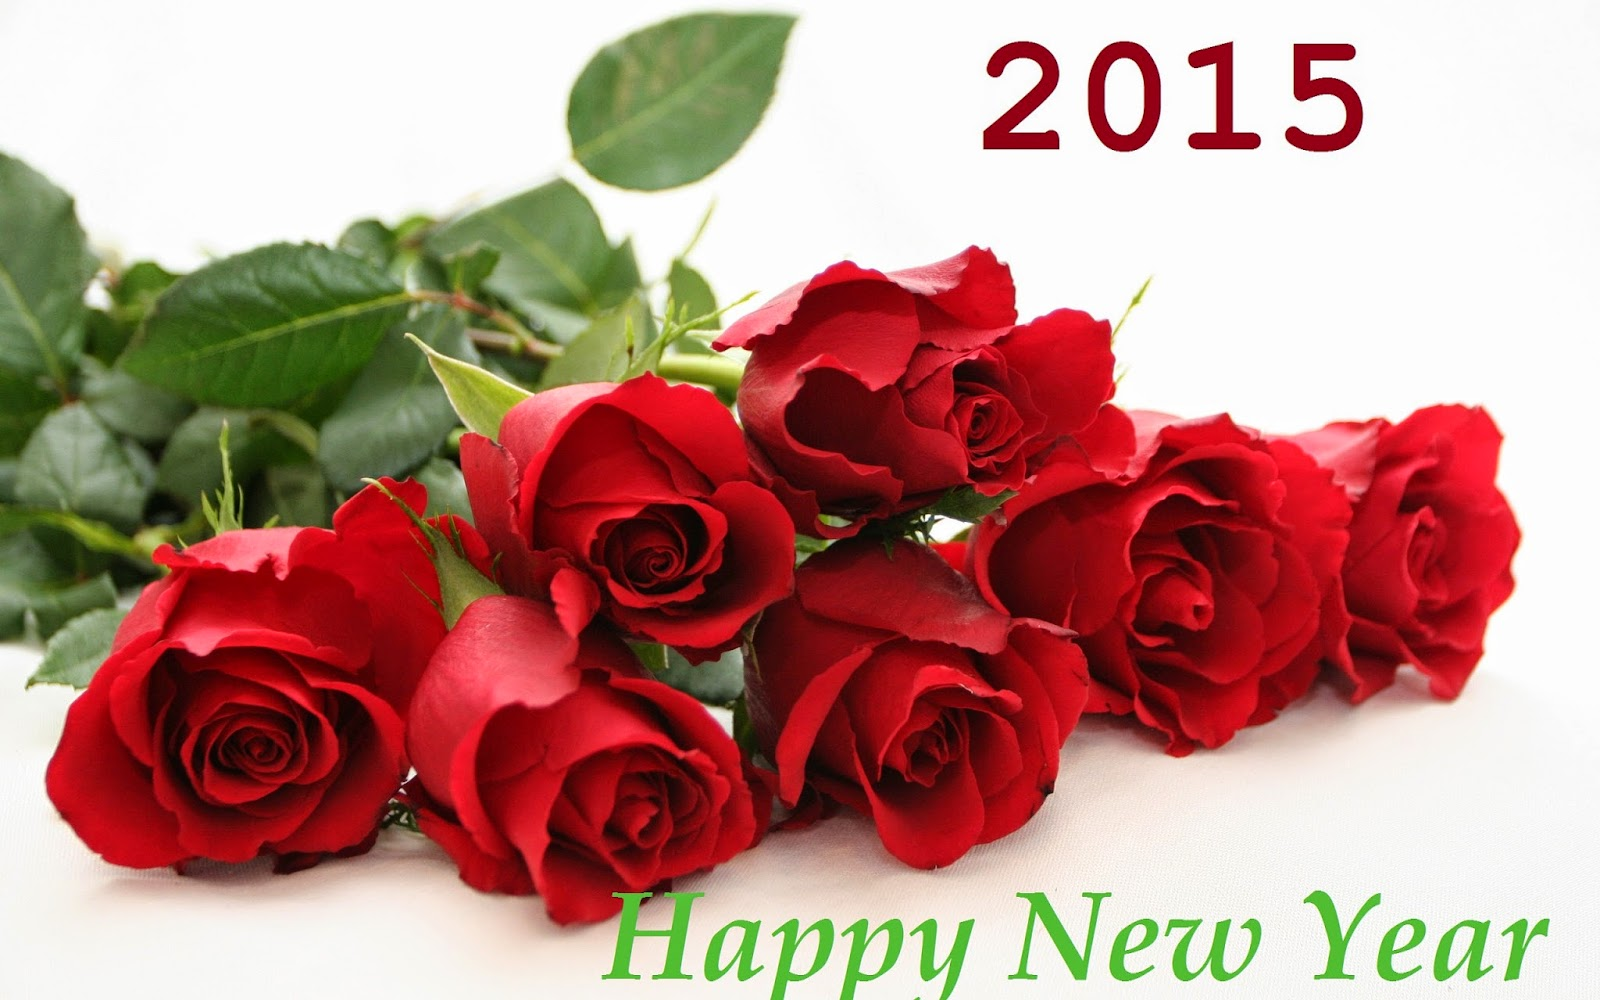 Happy New Year 2015 Greetings Wishes Roses Flower Wallpaper